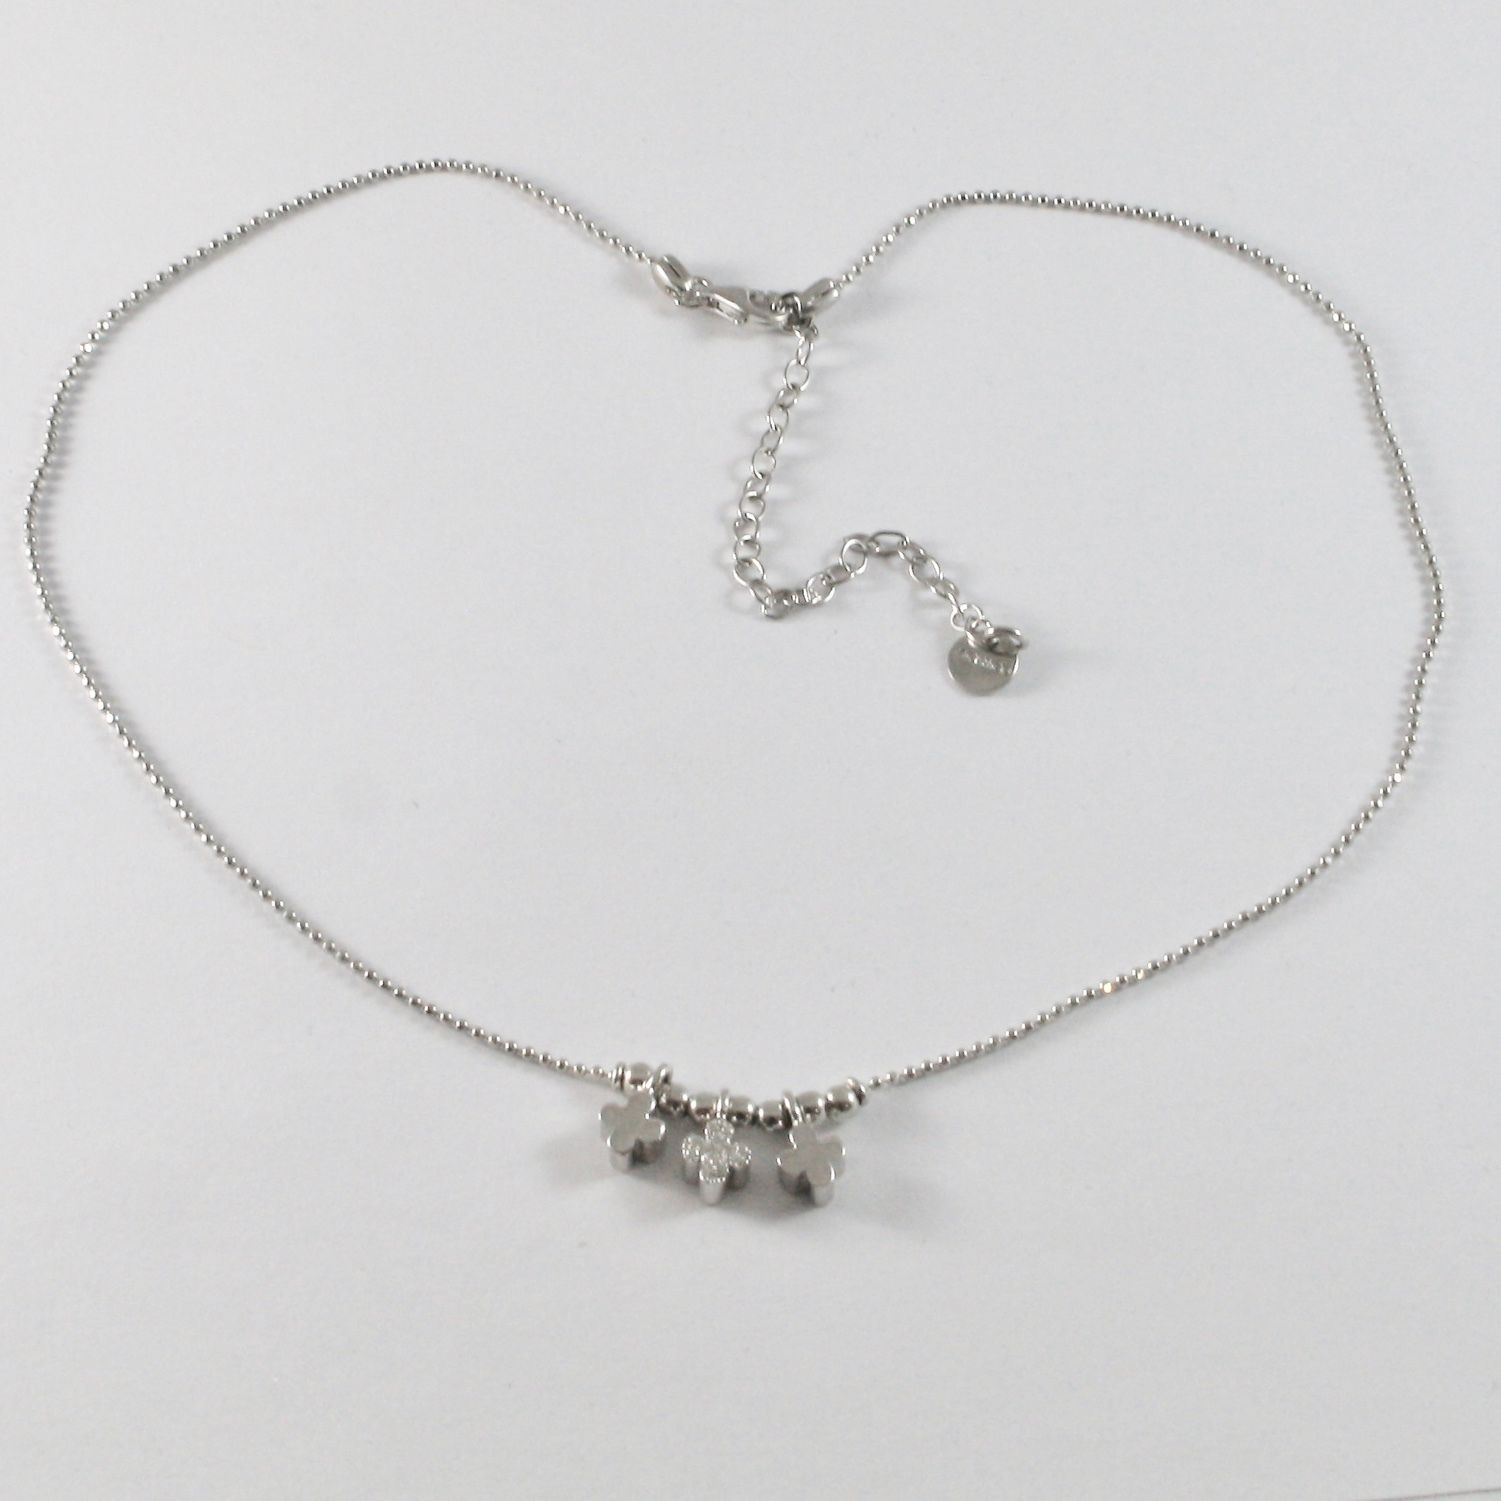 925 STERLING SILVER NECKLACE JACK&CO WITH FOUR-LEAF CLOVER WITH WHITE ZIRCONIA